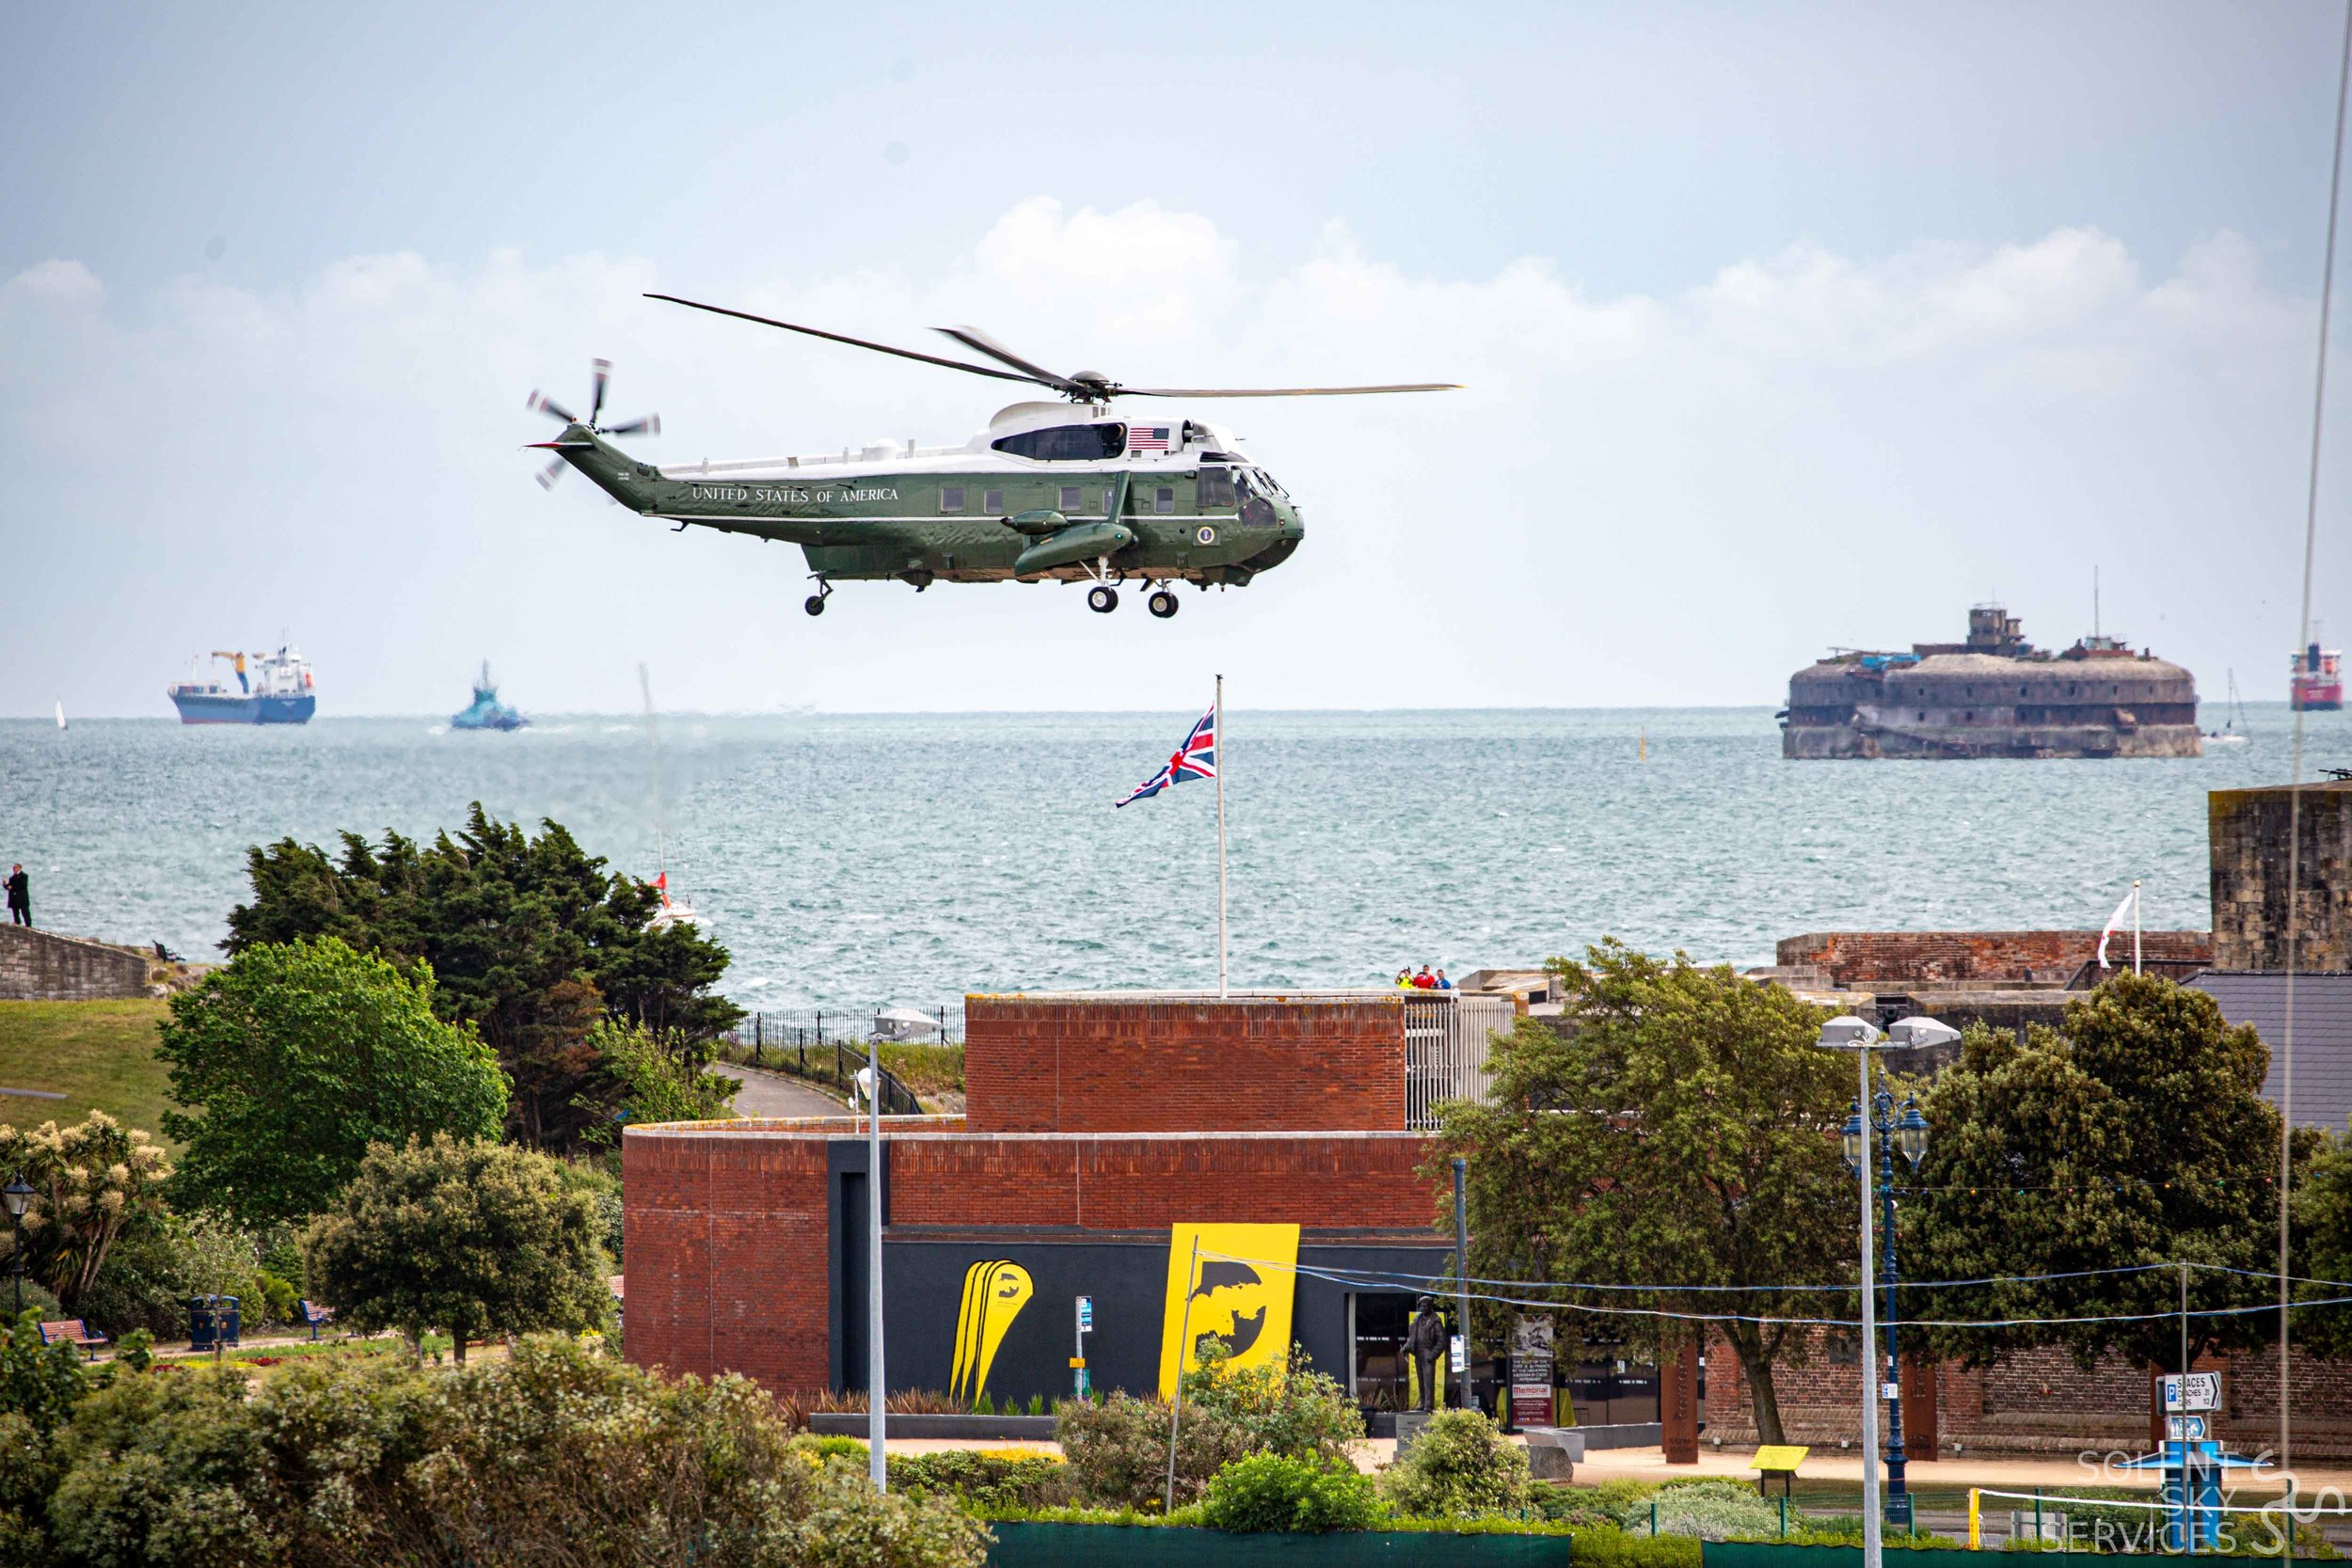 D DAY 75 - Solent Sky Services-51.JPG